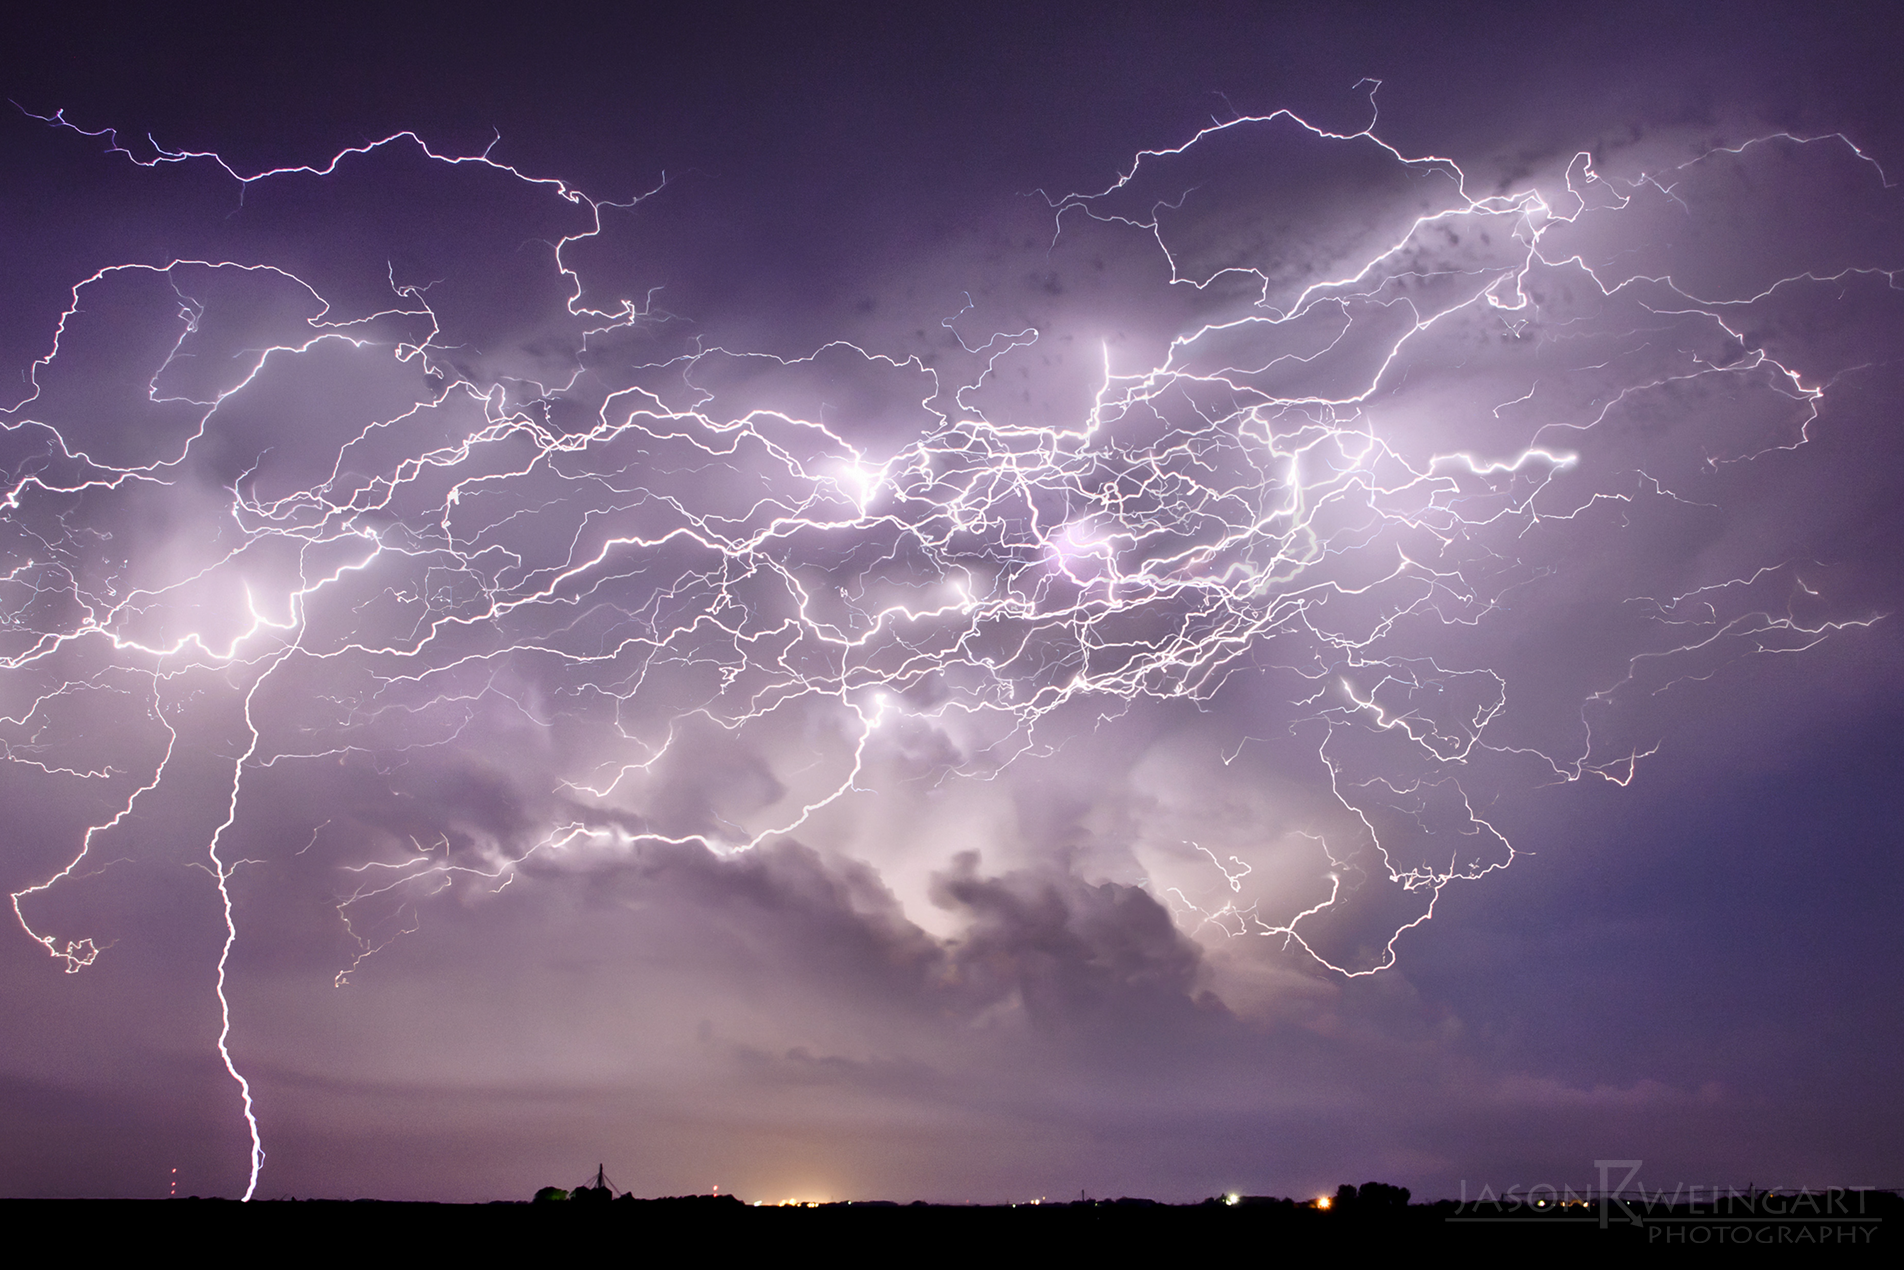 photography tips tutorials nature weather how to stack lightning photography image pictures